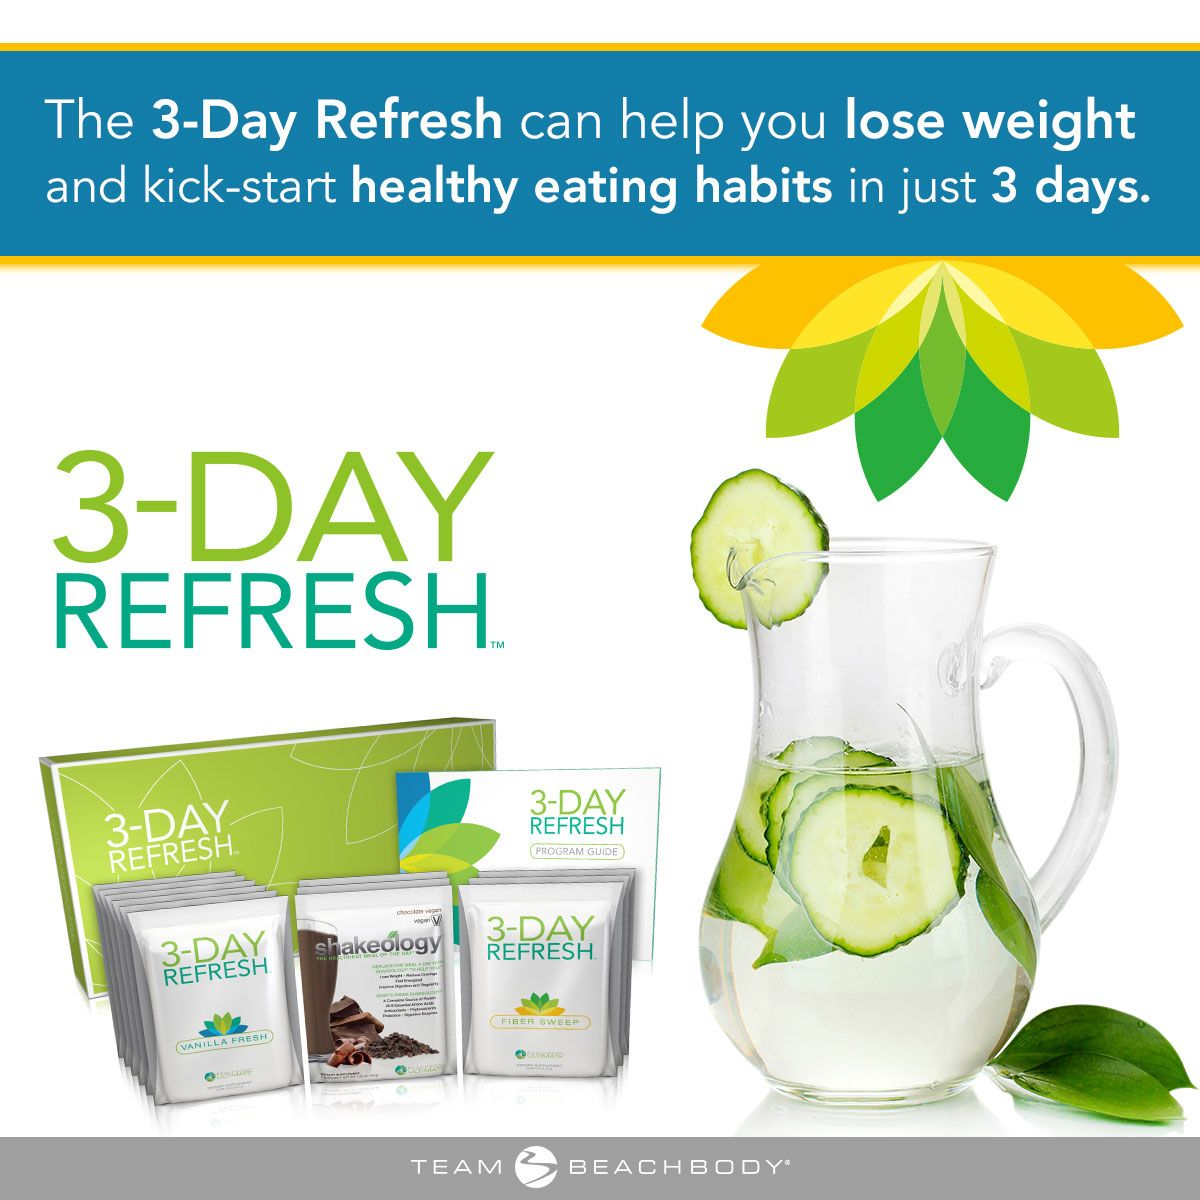 lose weight in 3 days for an event